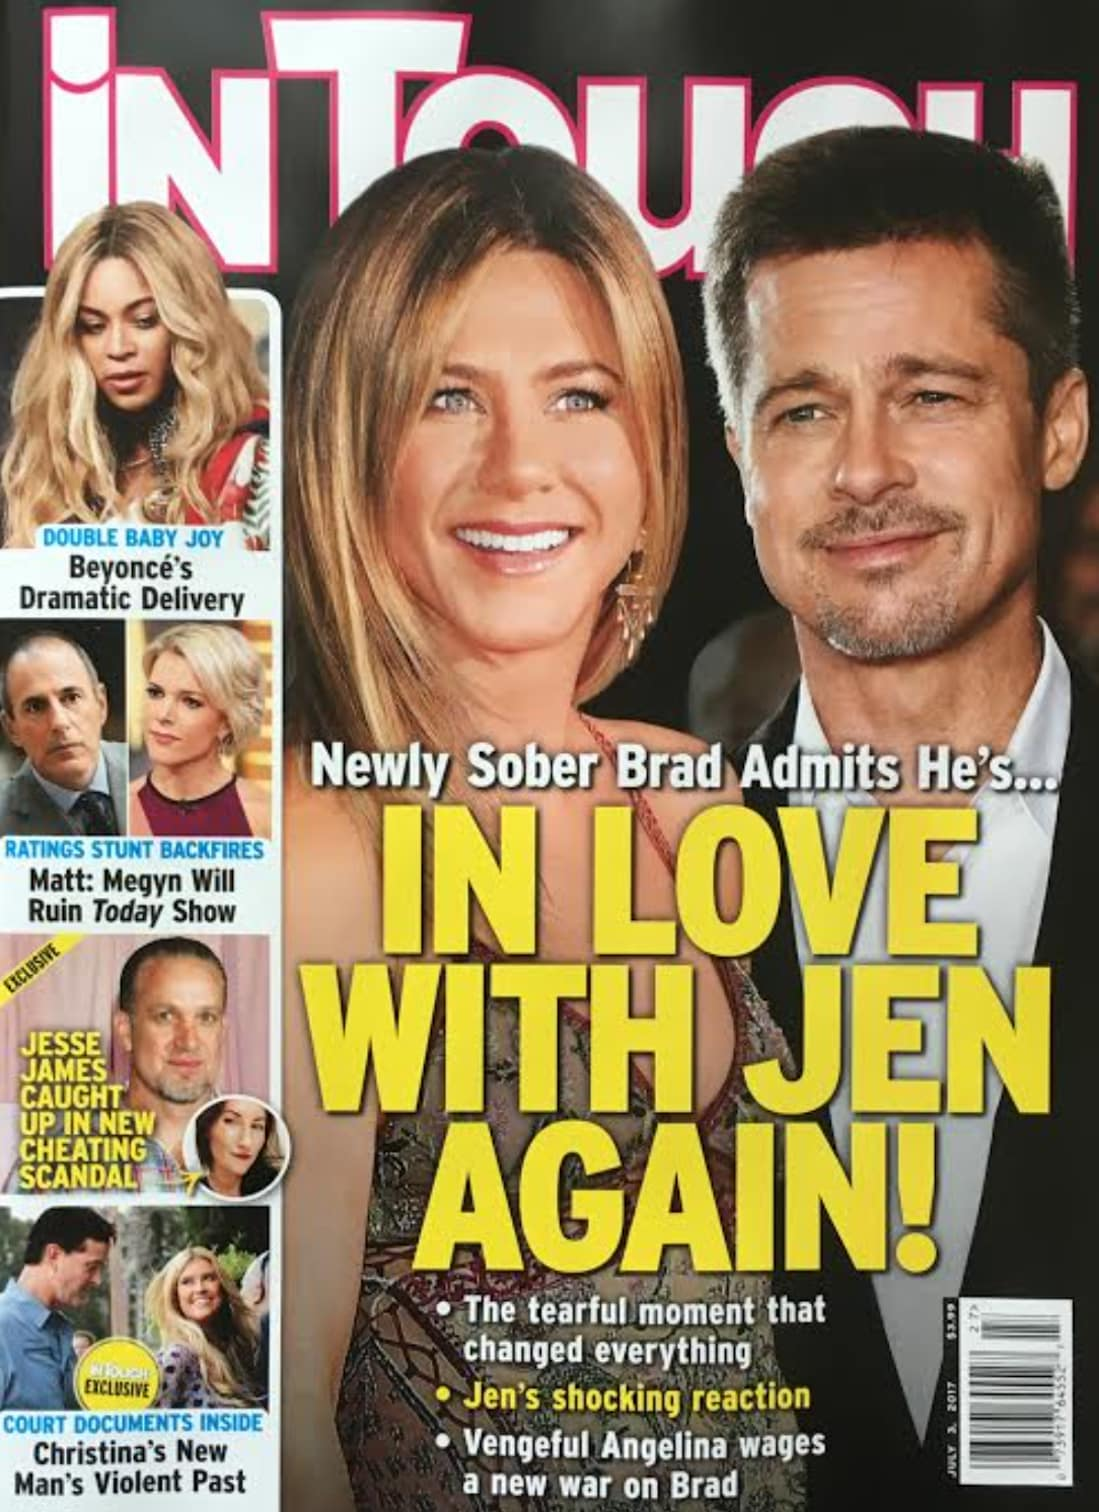 Brad Pitt and Jennifer Aniston are in active correspondence